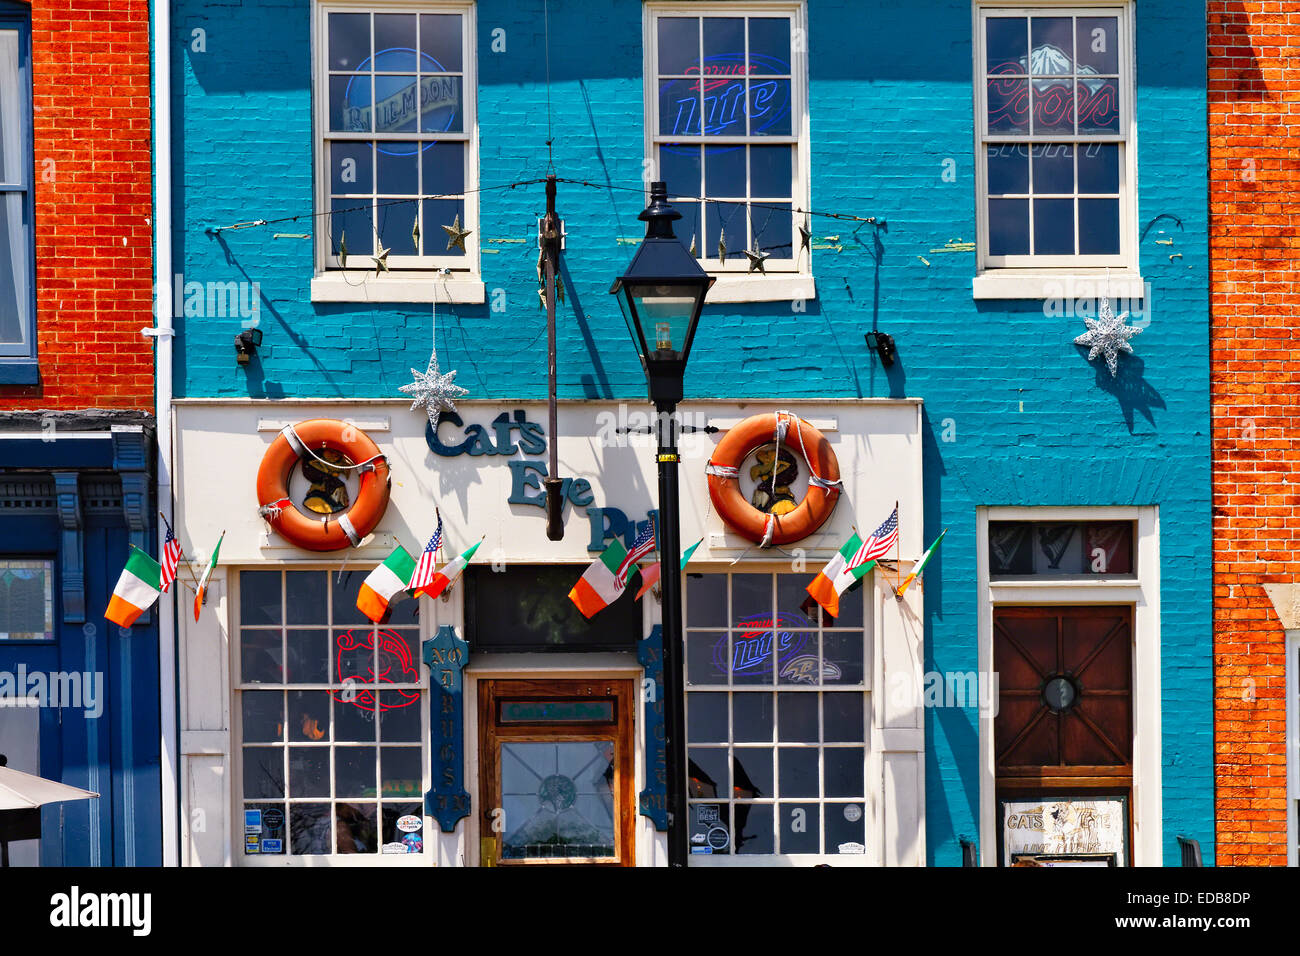 Colorful Pub Front at Fell's Point , Baltimore, Maryland - Stock Image